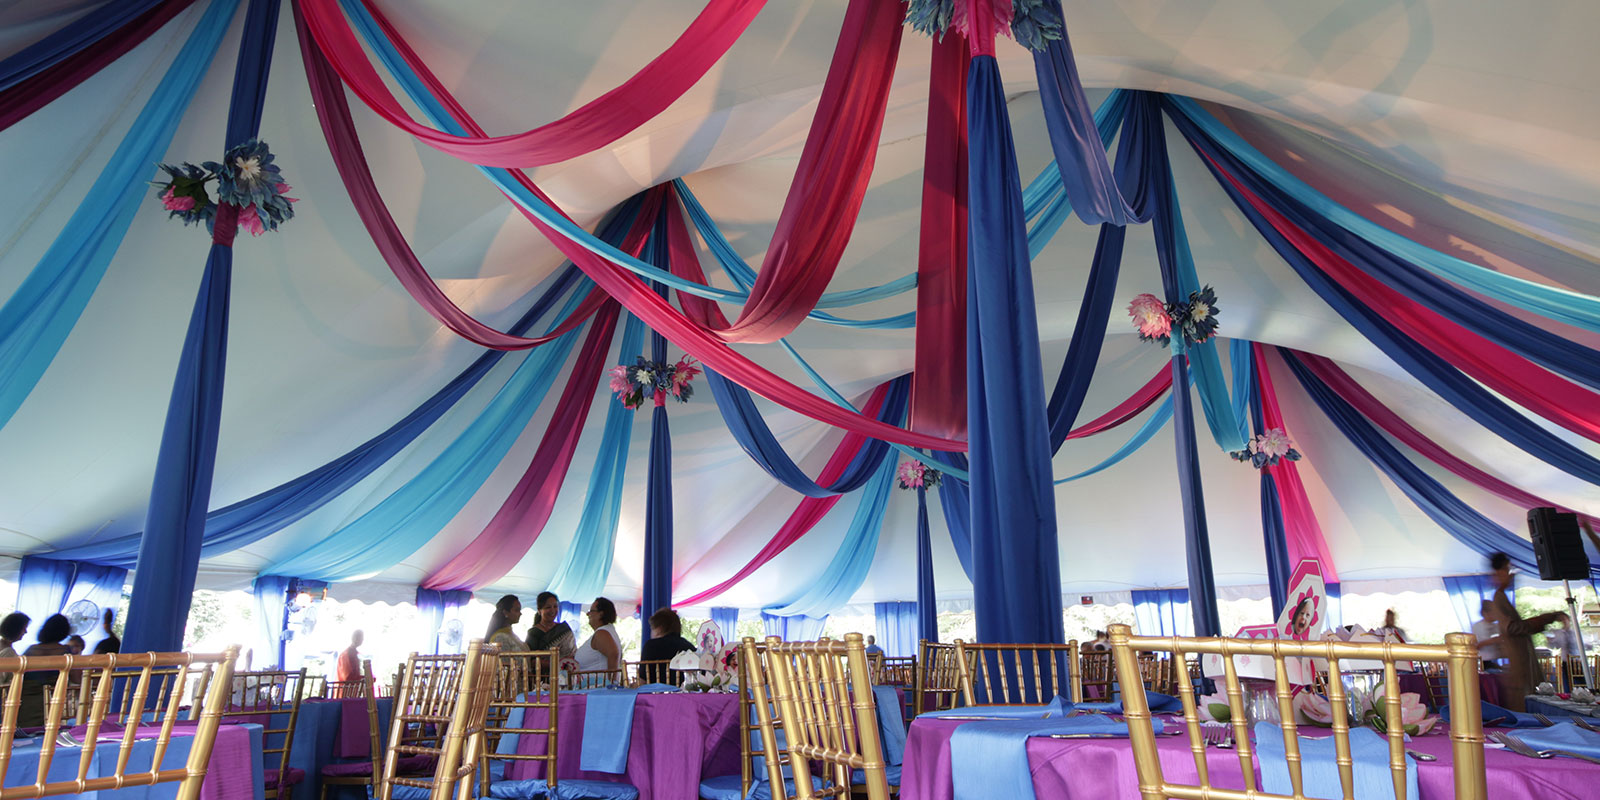 About South Jersey Party Rentals